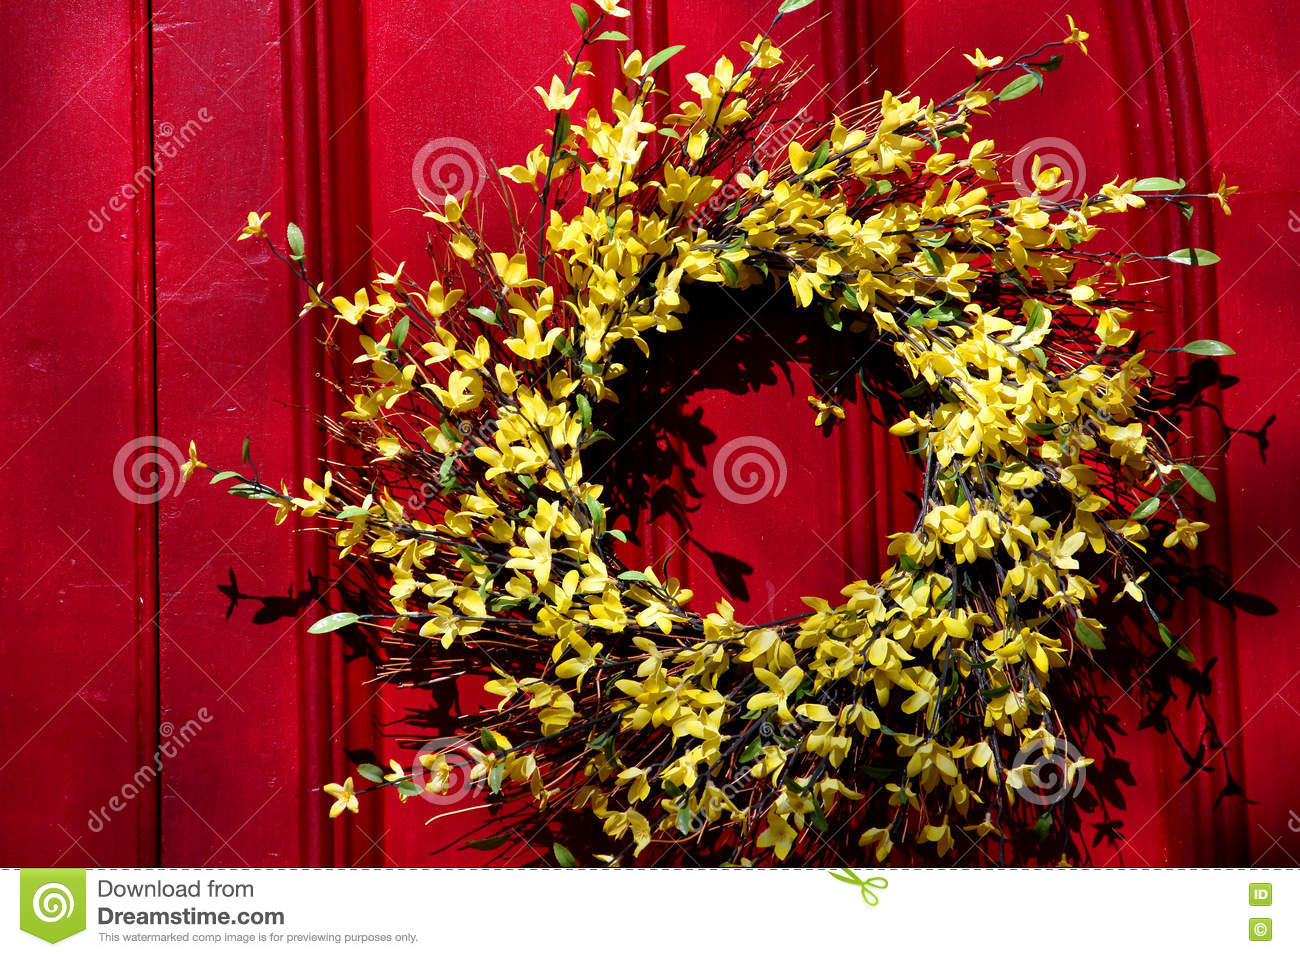 Red Door With Yellow Wreath Stock Image Image Of Yellow Paint